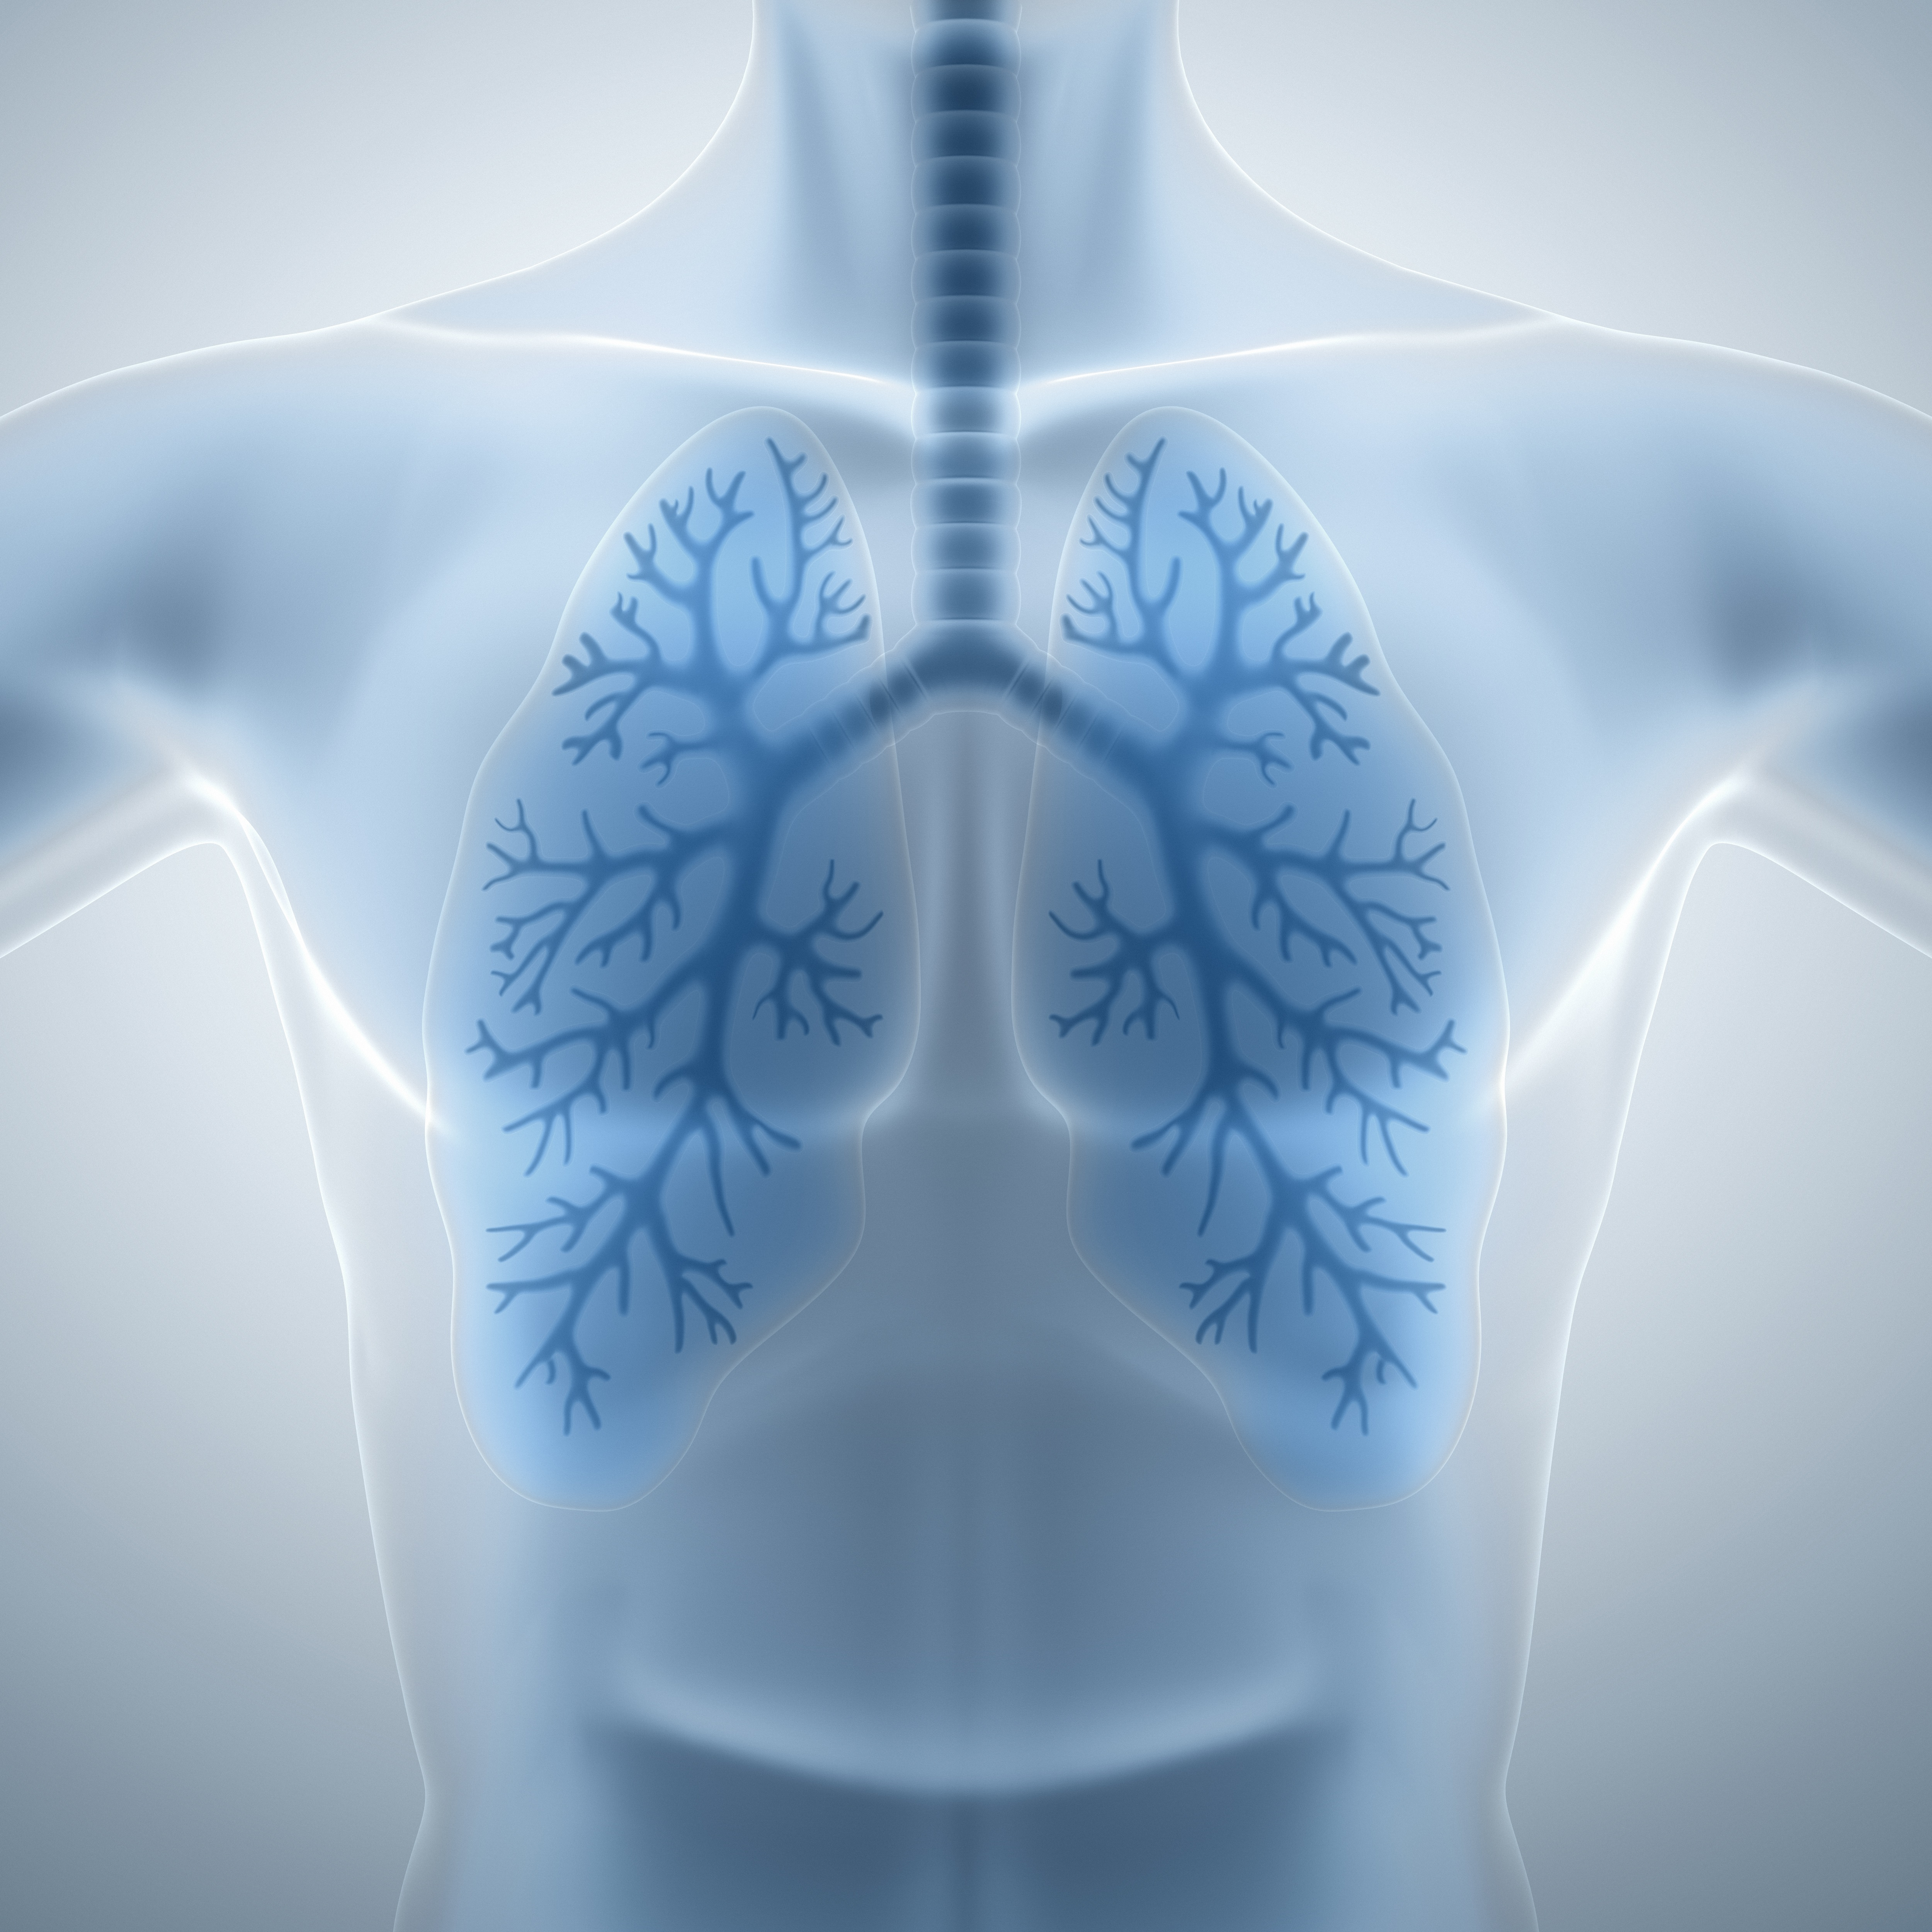 Long-term Ofev Safely Slows Lung Function Decline in SSc-ILD Patients, Trial Data Show